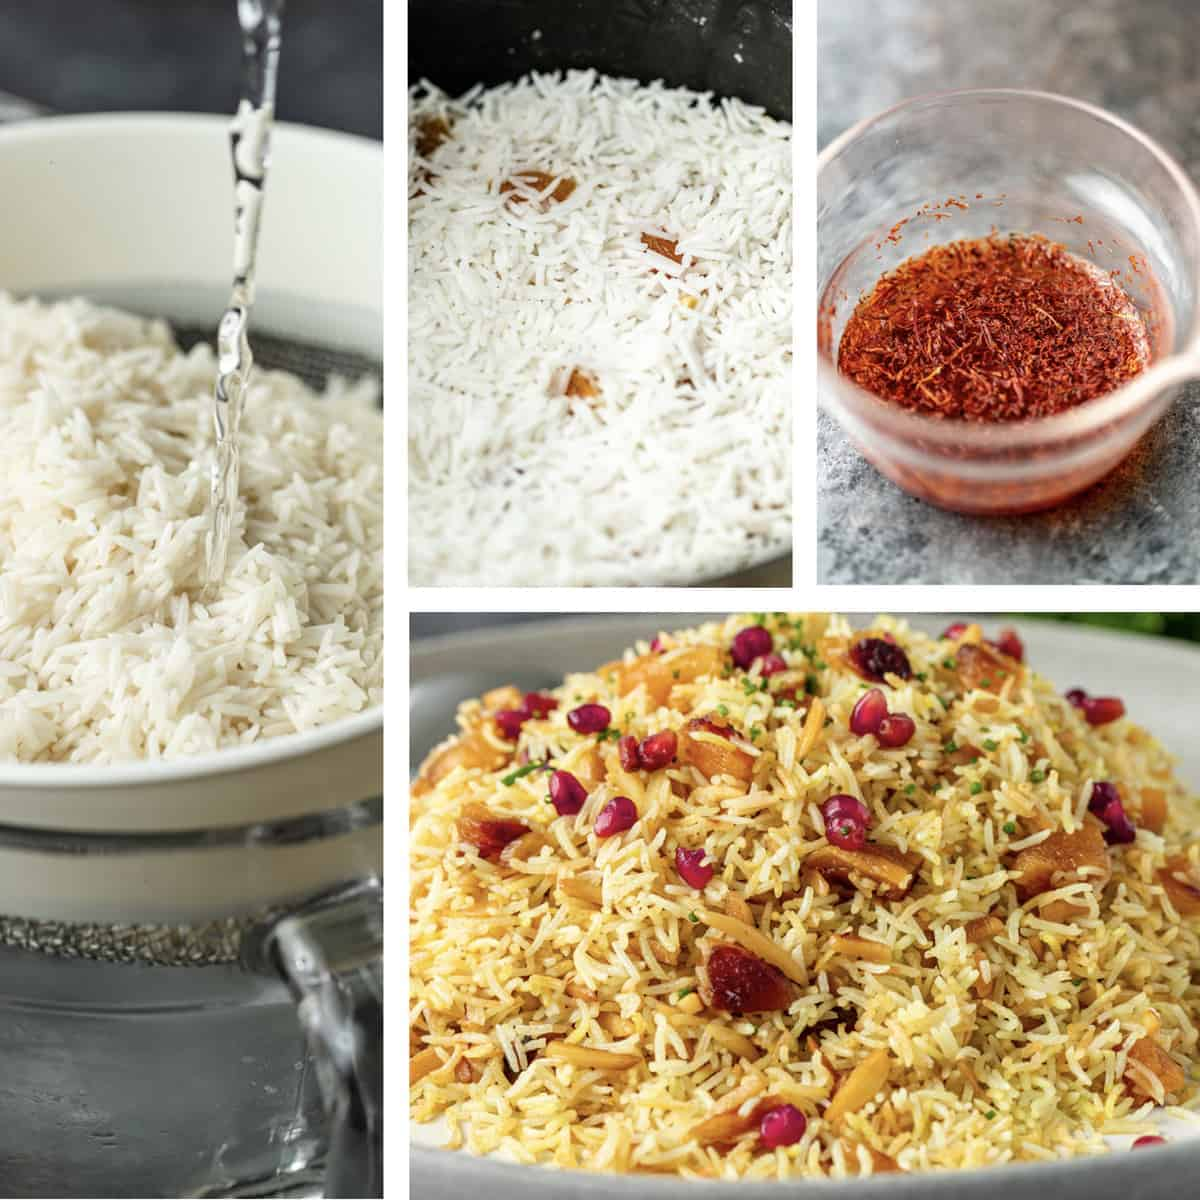 photo collage shows steps to making Persian saffron rice recipe